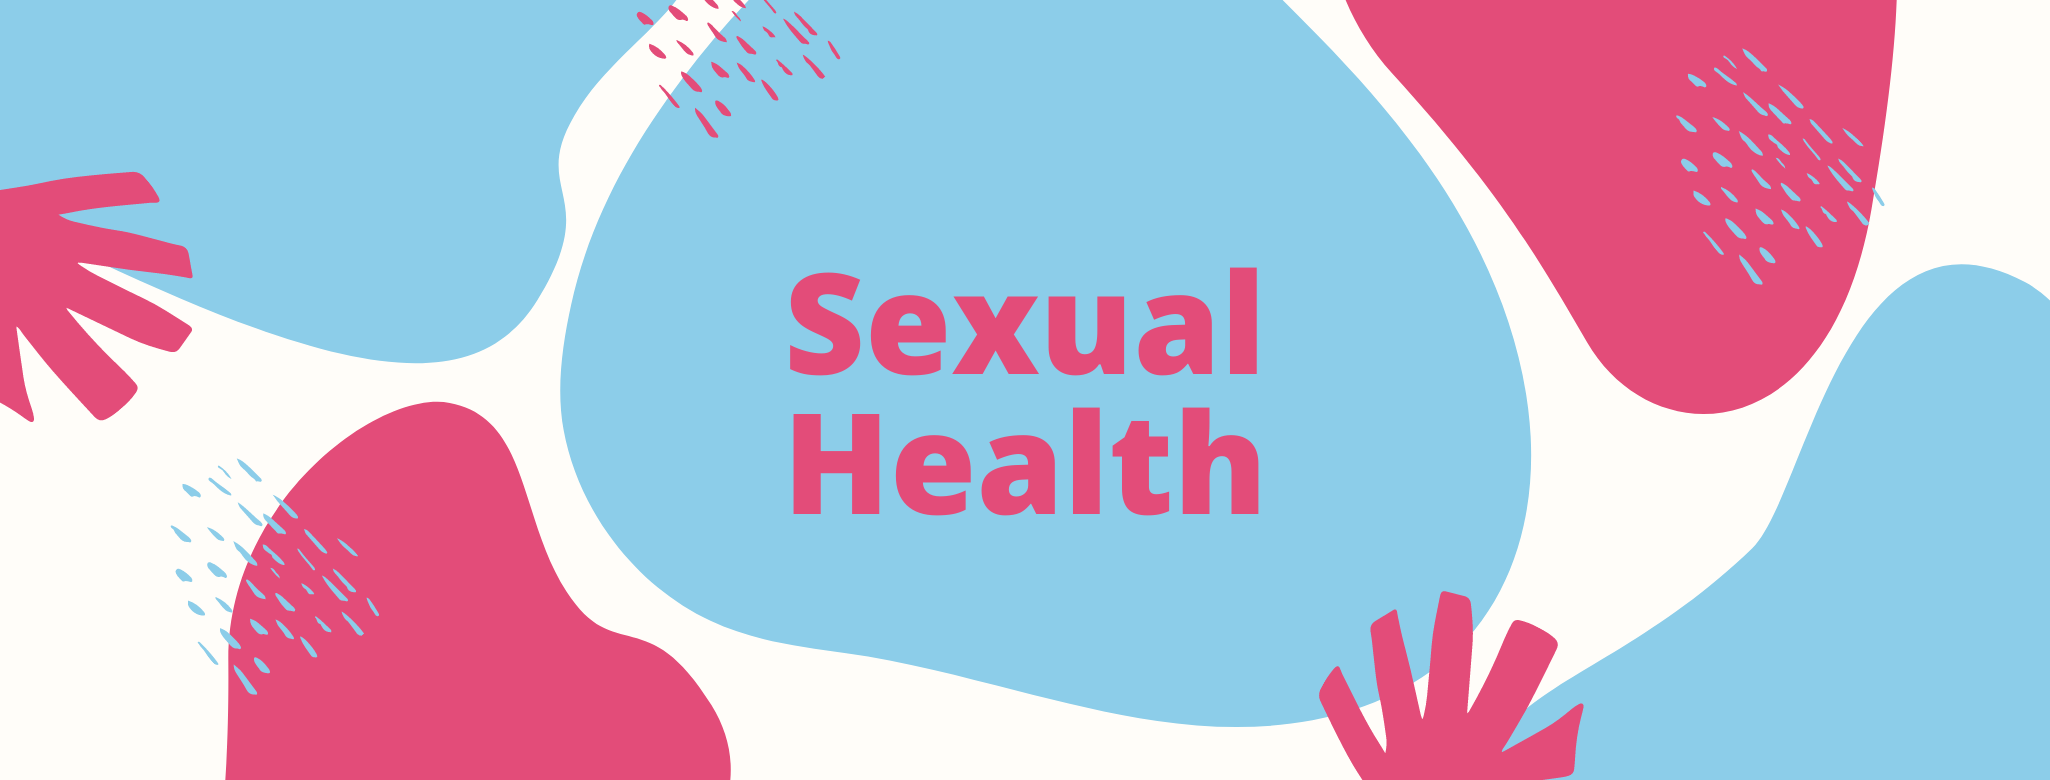 Sexual Health Awareness Week